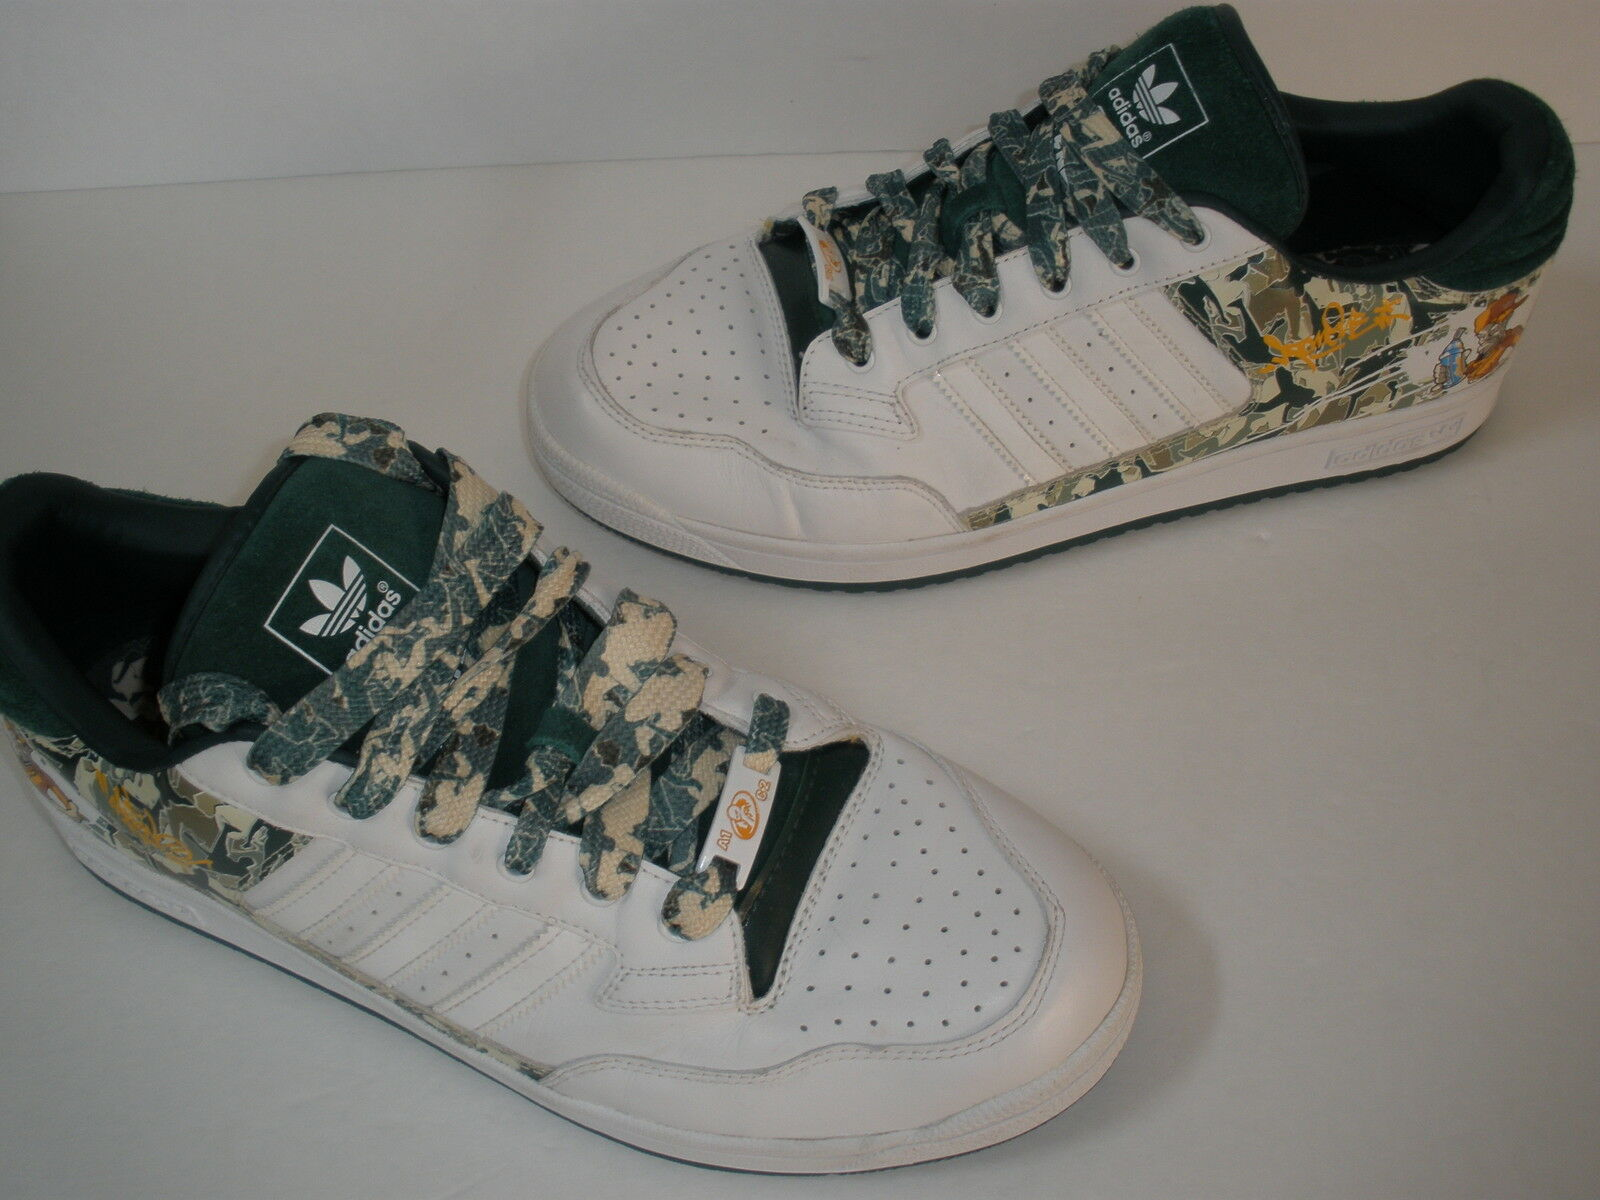 @ ADIDAS CENTENNIAL  END TO END GRAFFITI Scarpe US 14 EUR 49  RARE HOT VINTAGE